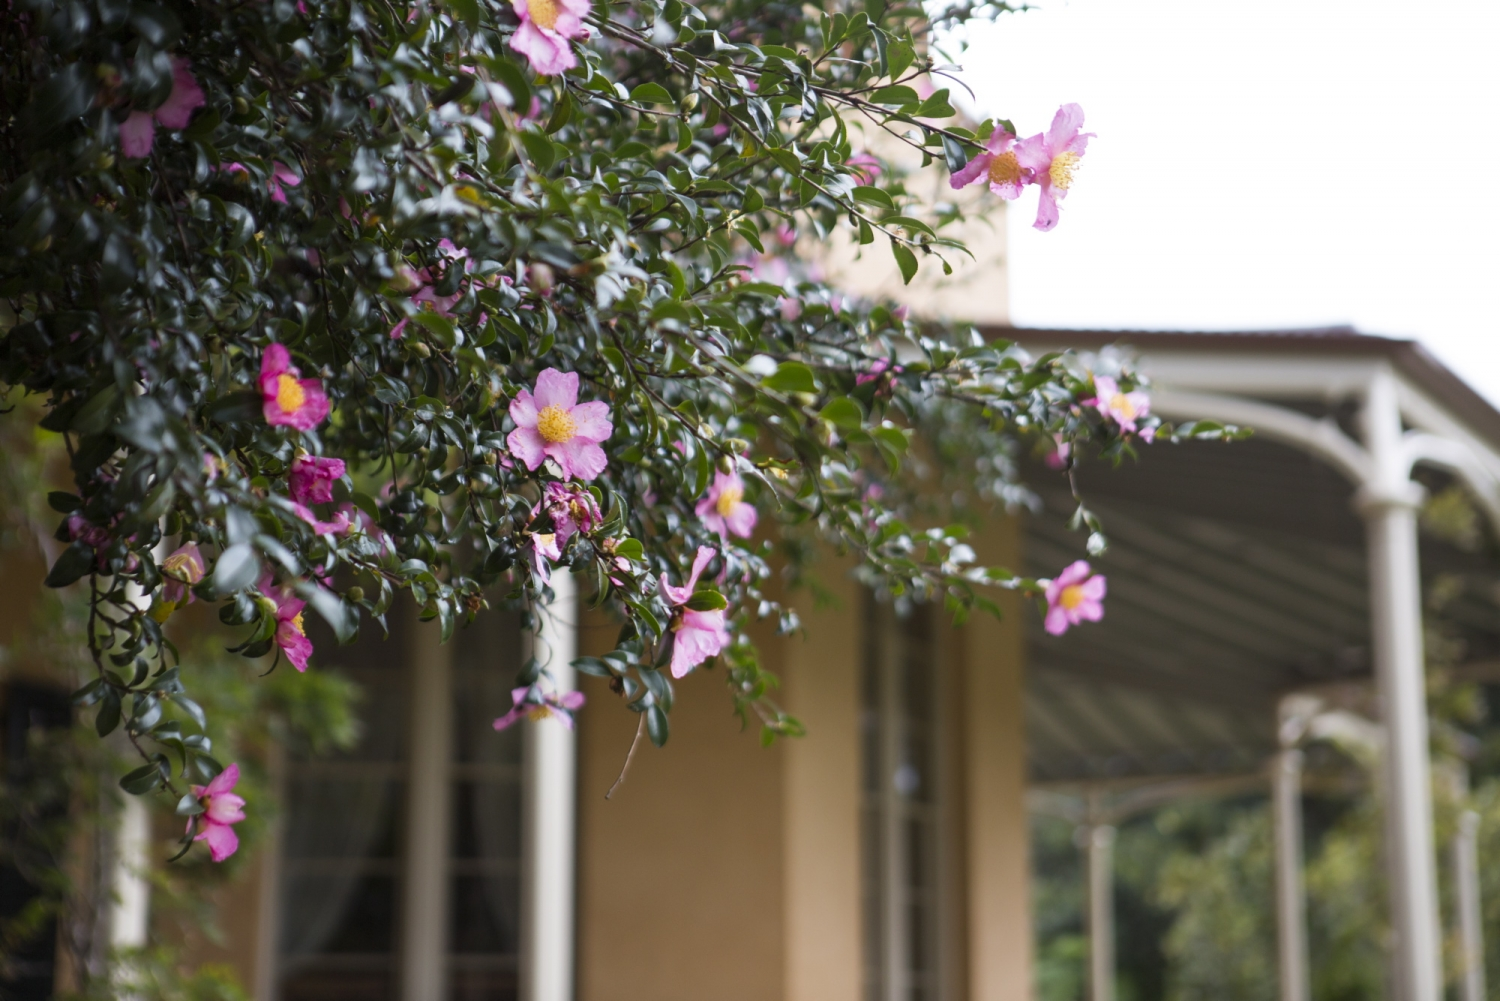 Photograph of a large camellia in flower beside Vaucluse House